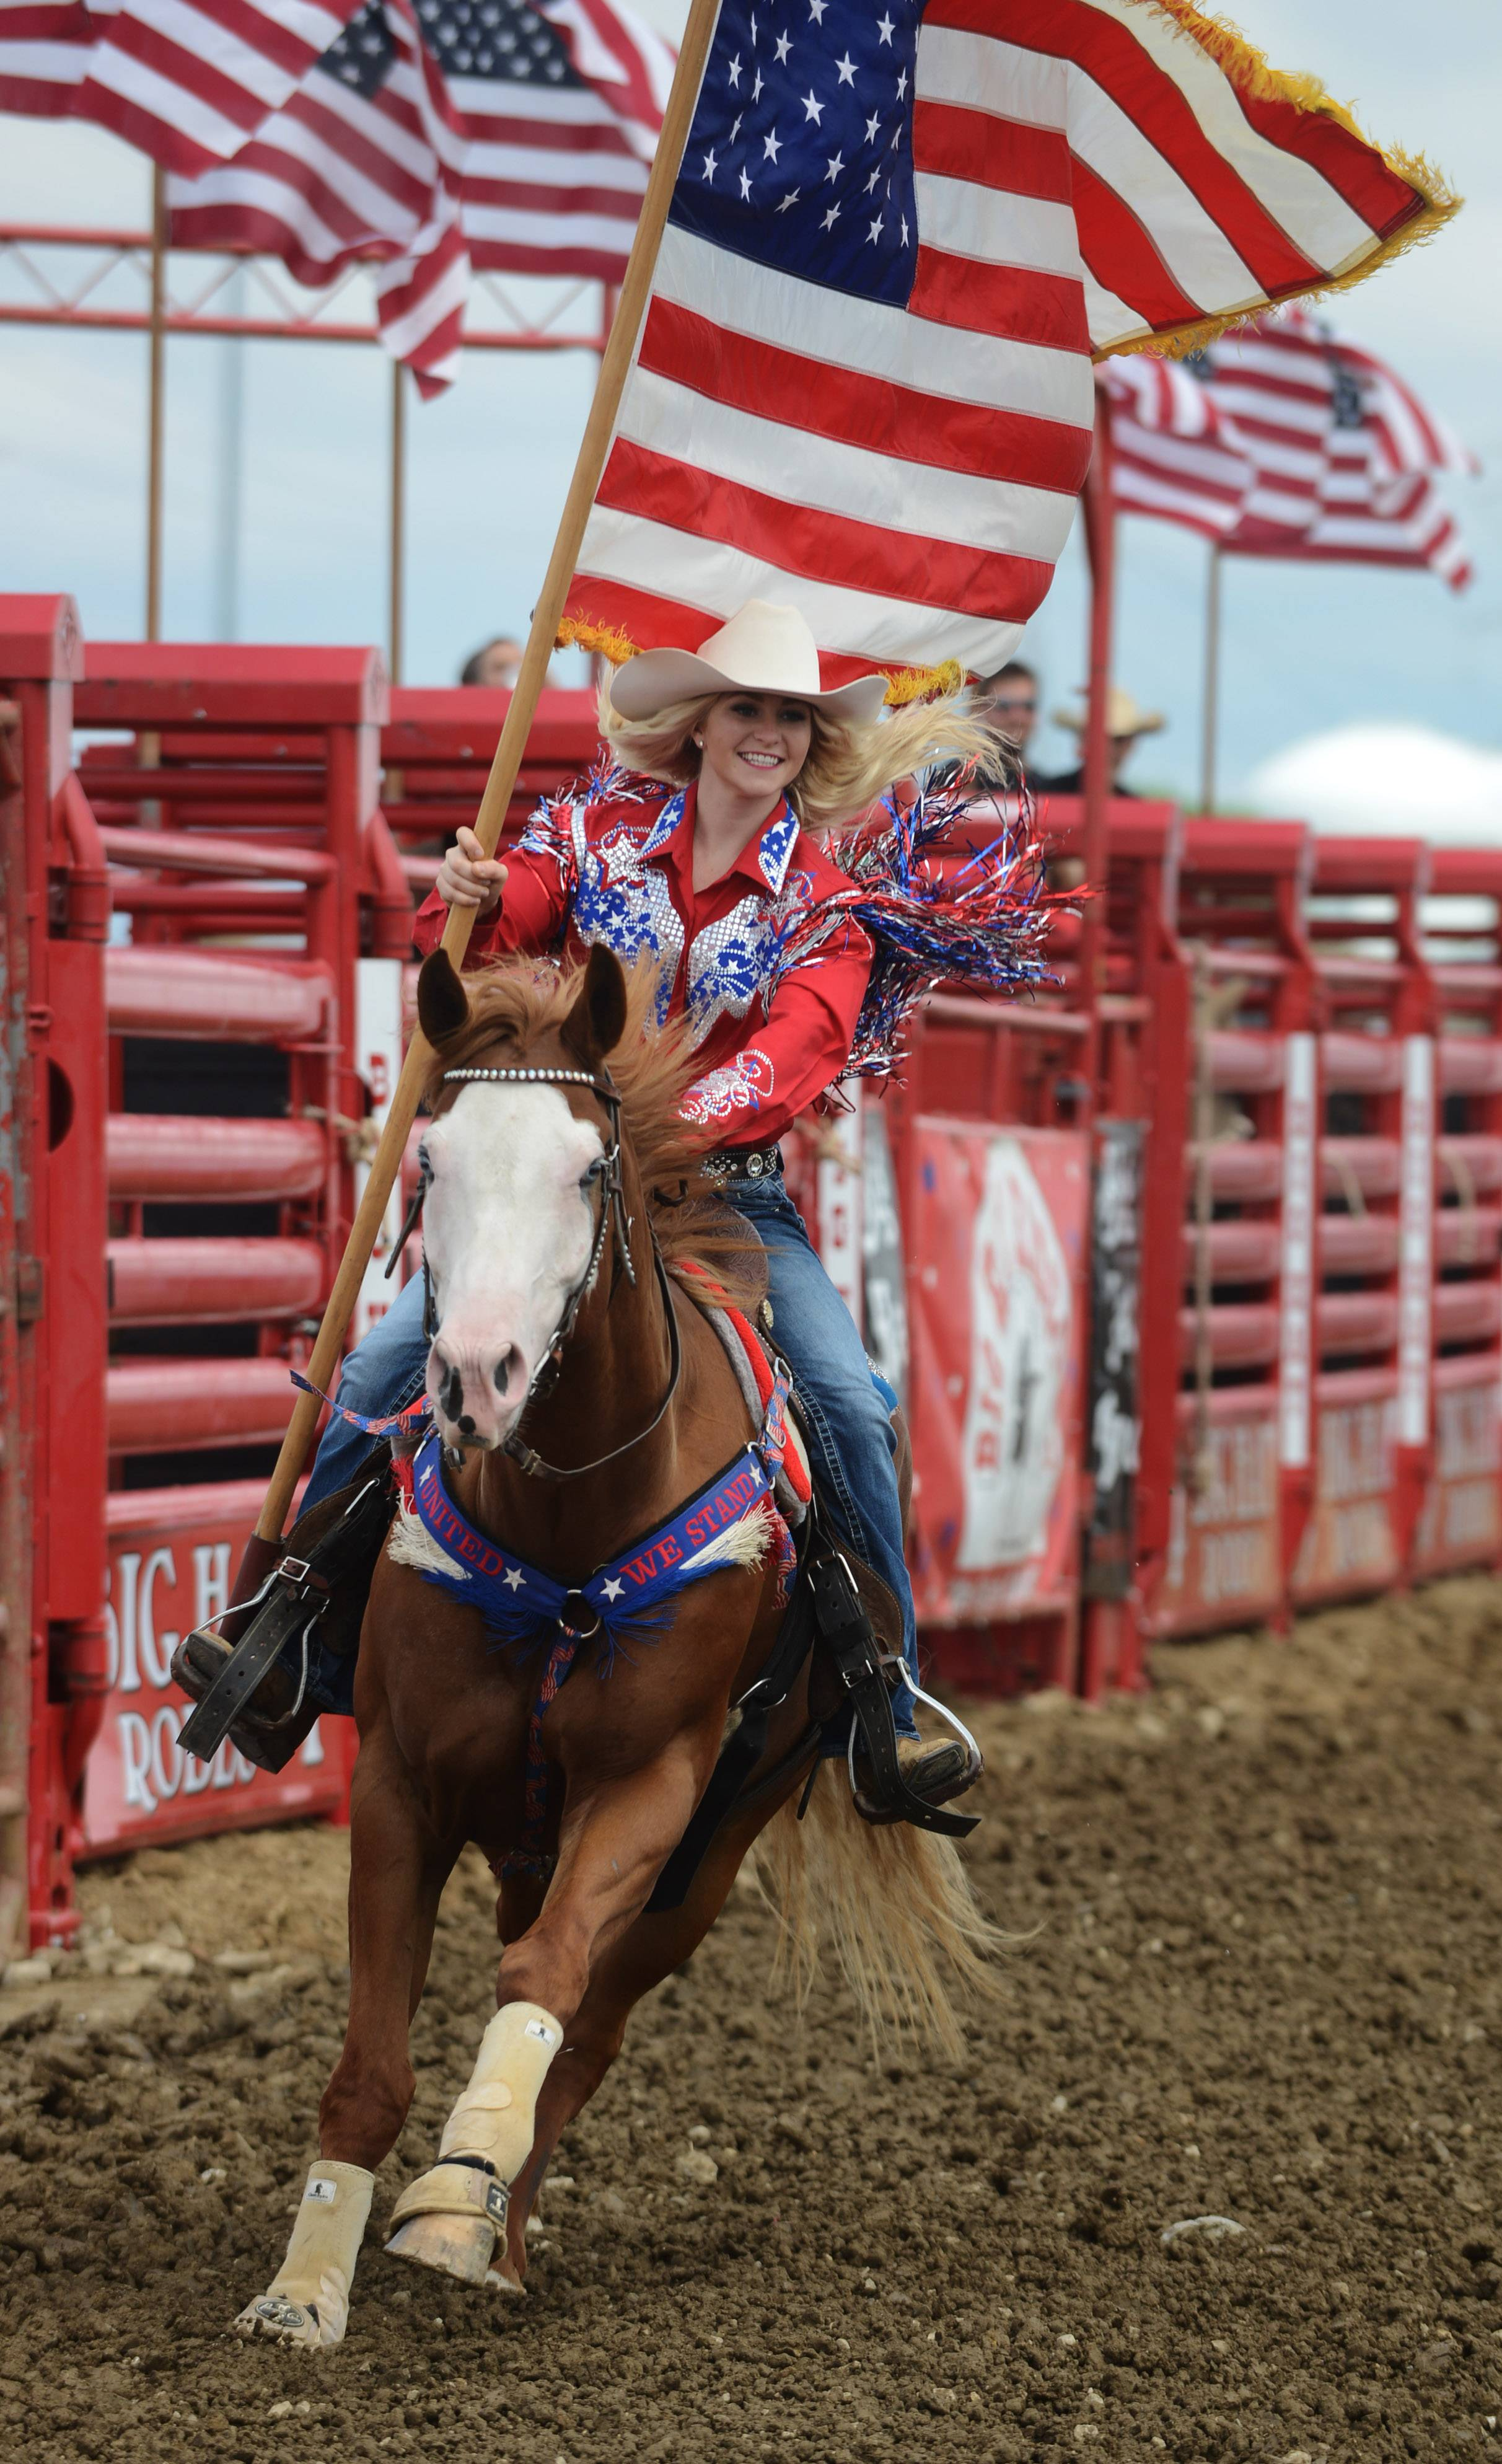 Hannah Ritter of Clinton, Ill., rides with the American flag at the start of the rodeo during last year's Lake County Fair in Grayslake.